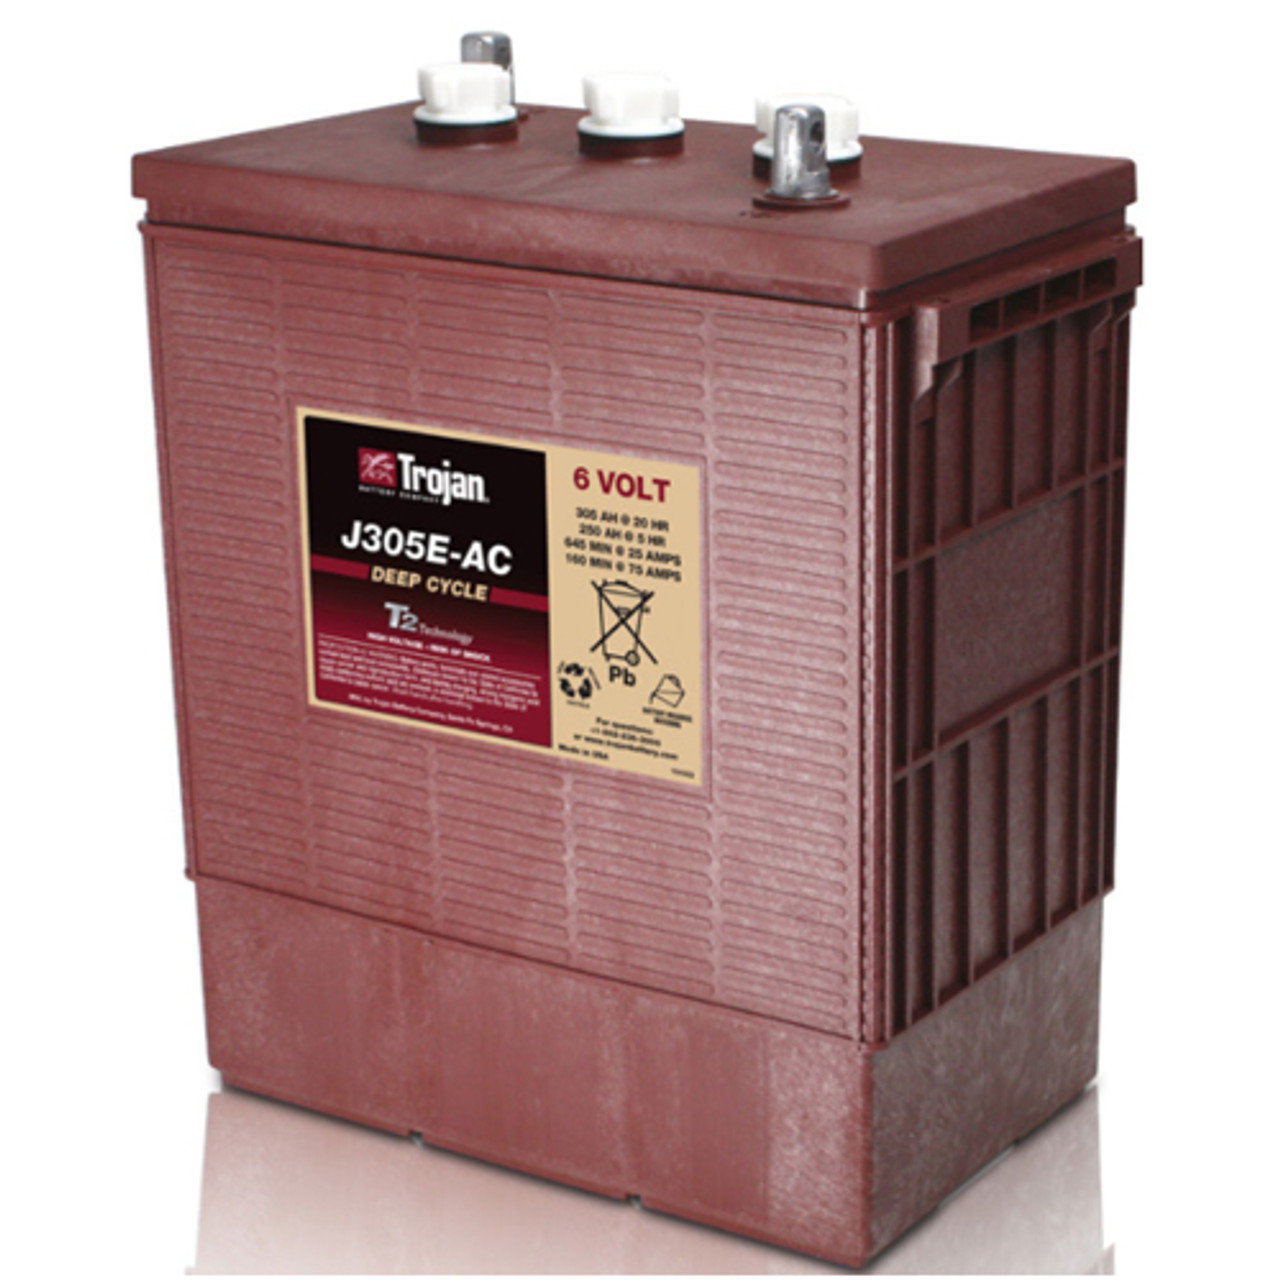 Trojan J305E-AC Deep Cycle Battery